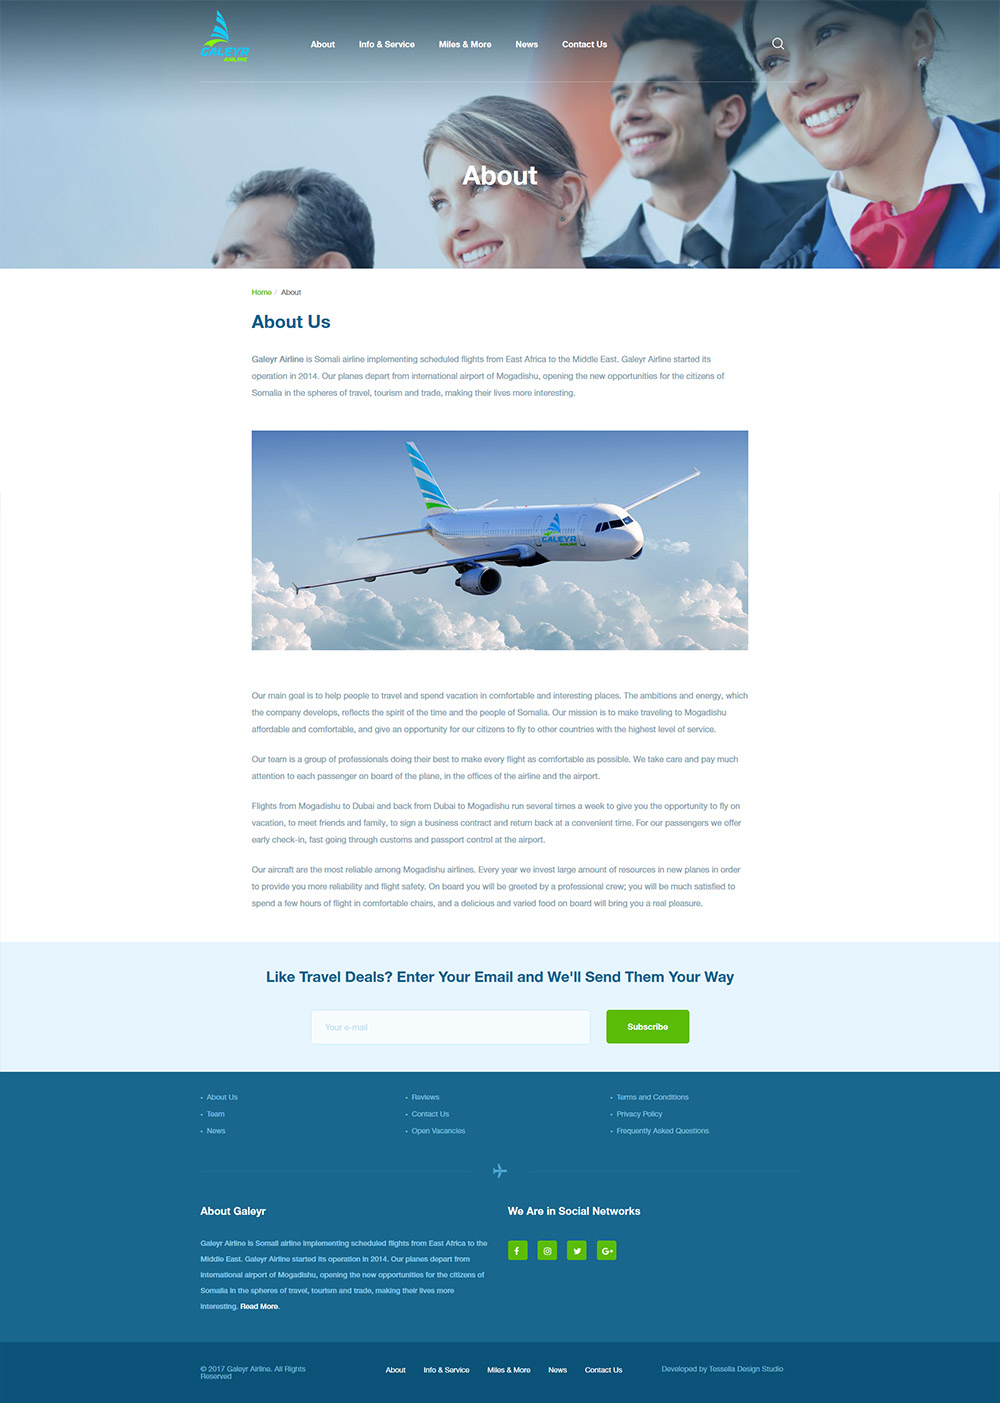 Galeyr Airline About Page design